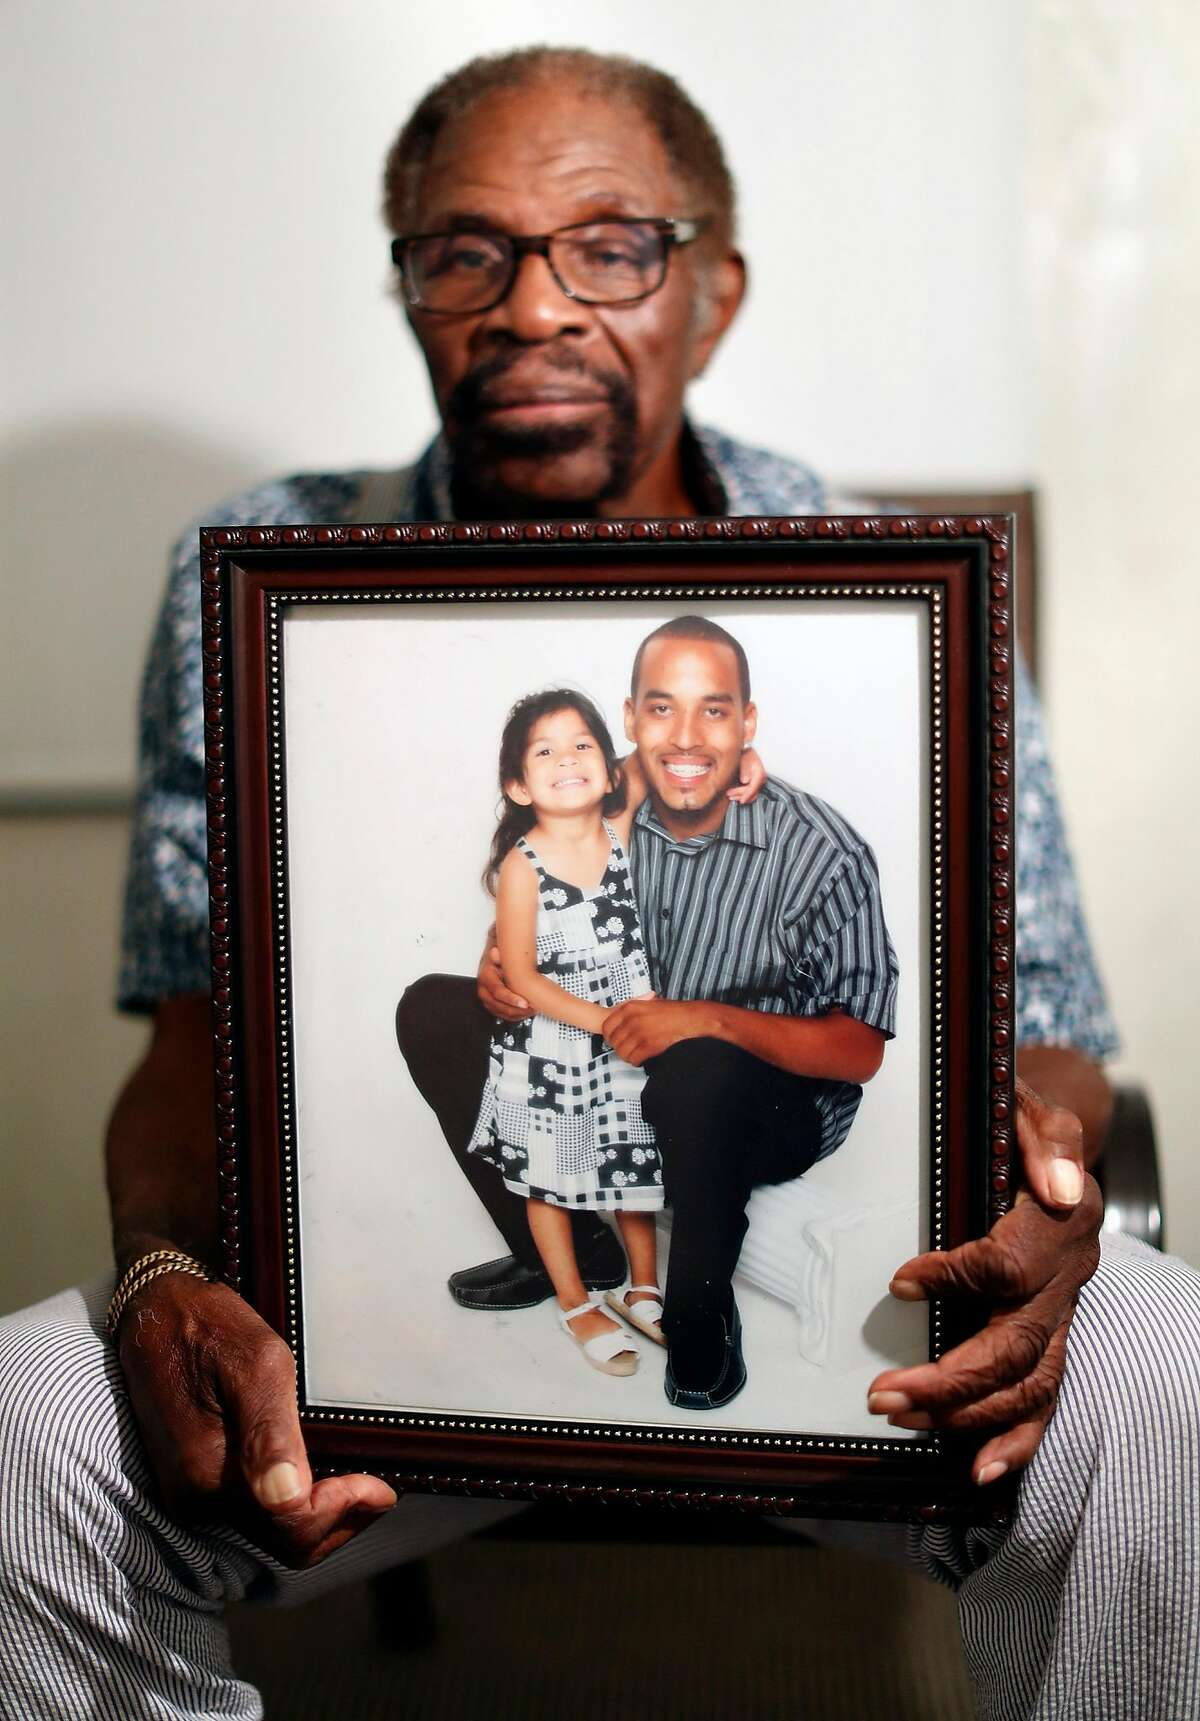 Mack Wilson's son, Neko, was an accomplice to a 2009 murder but will be subject to resentencing under new laws signed by California Governor Jerry Brown, Photographed at the headquarters of Advocates for Justice in Modesto, Calif. on Monday, October 1, 2018.